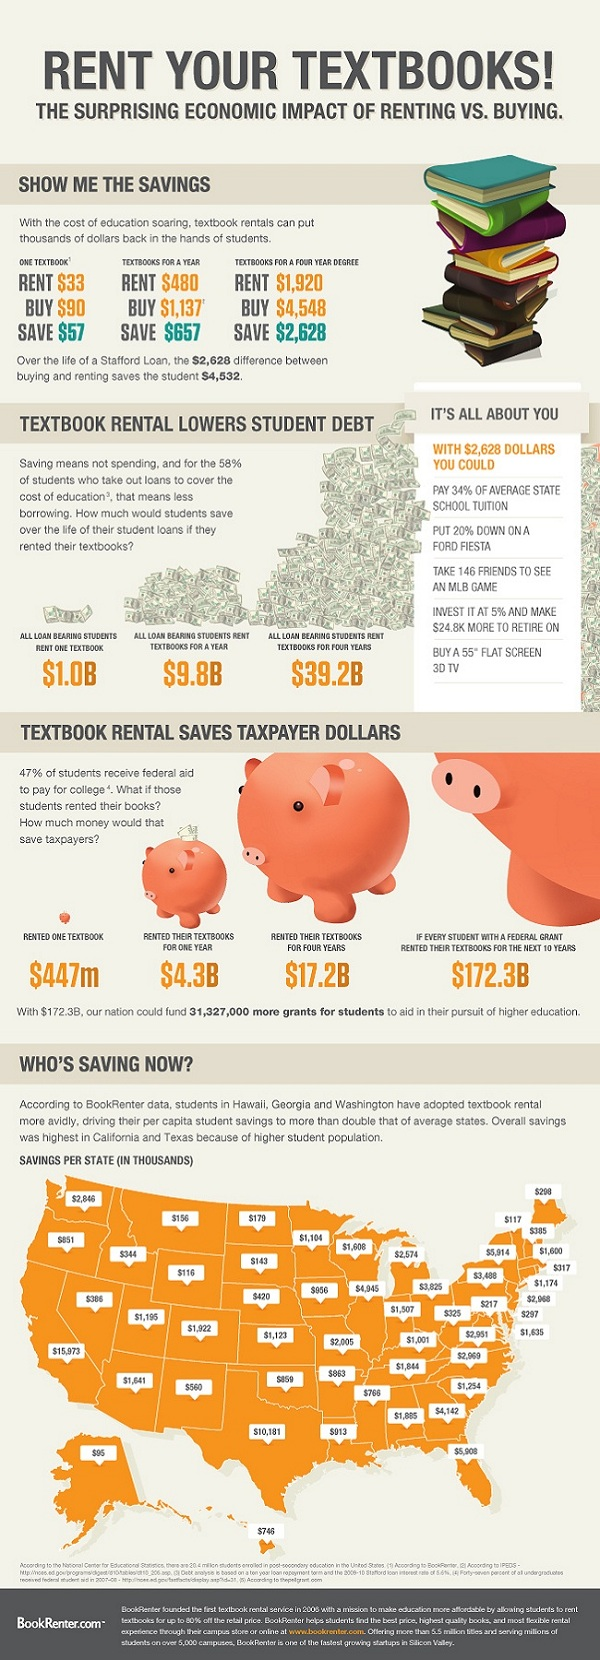 Why You Should Rent Your Textbooks